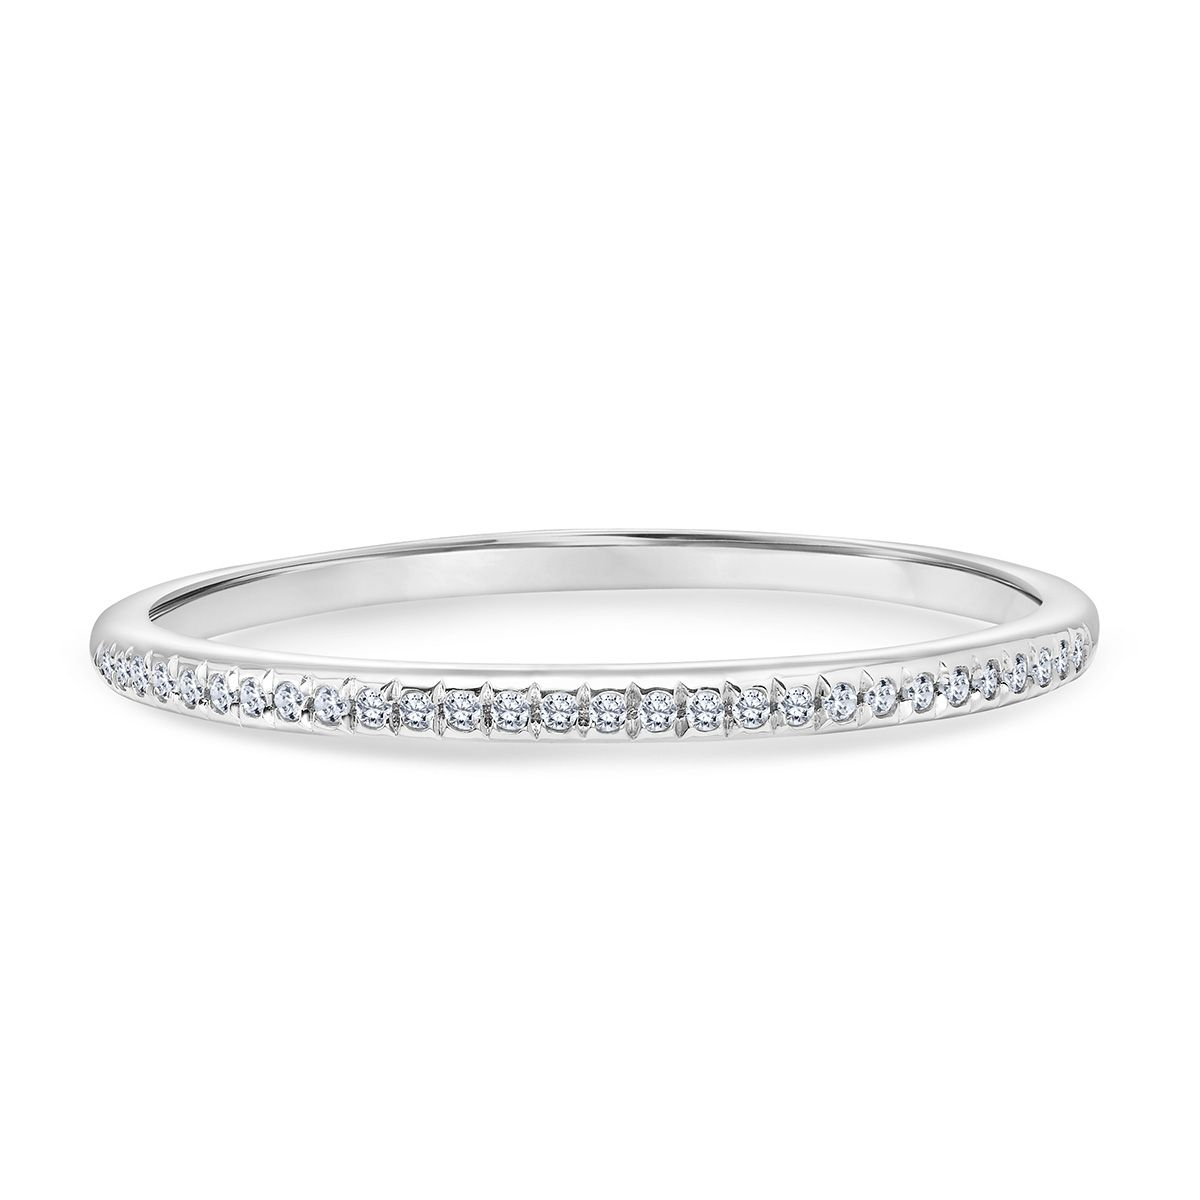 Rings | Diamonds International Throughout Most Recent Diamond Layered Anniversary Ring In White Gold (Gallery 12 of 25)